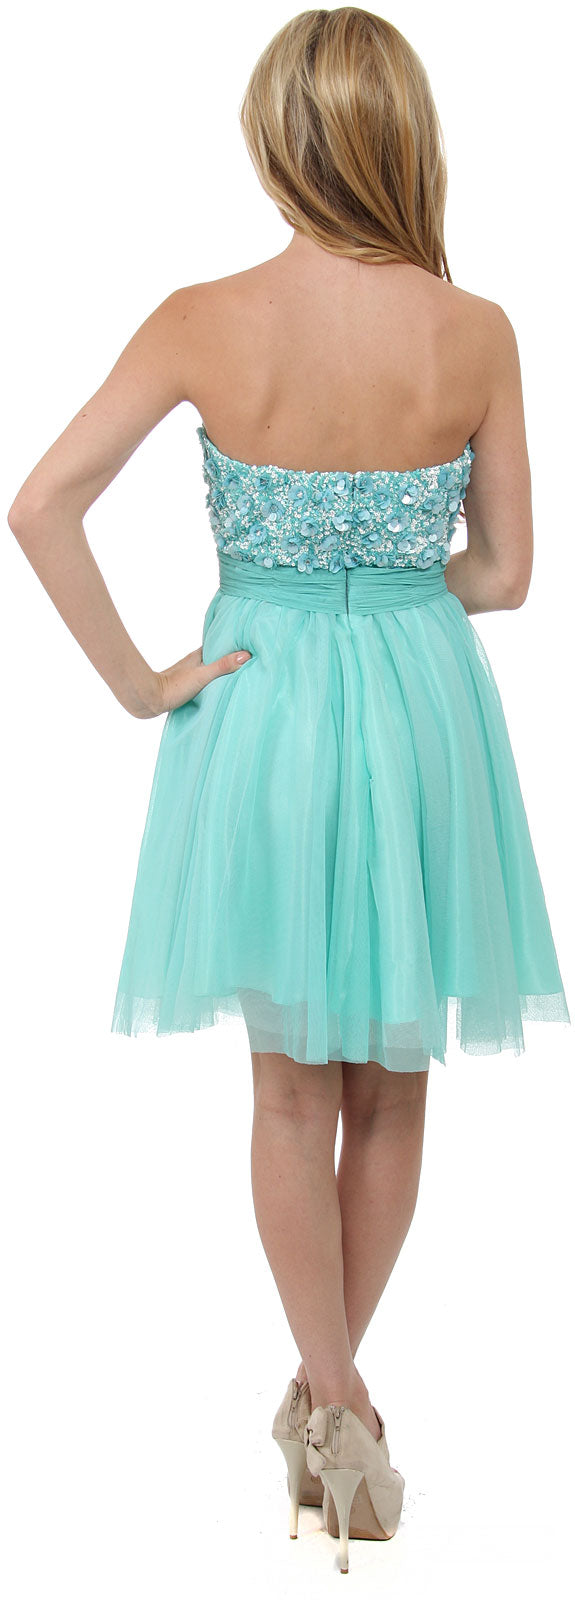 Image of Strapless Flowered Sequined Short Dress back in Aqua/Multi